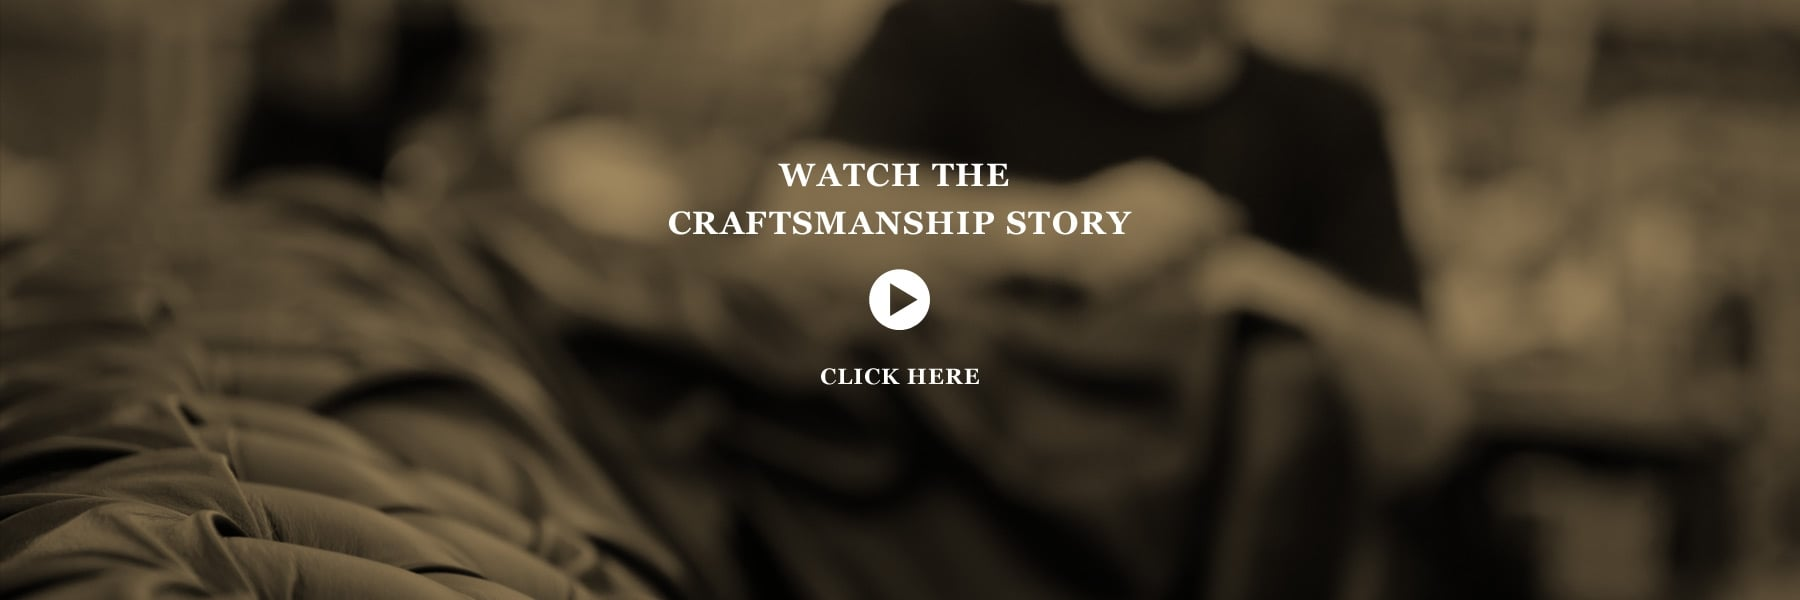 Watch the Craftsmanship Story